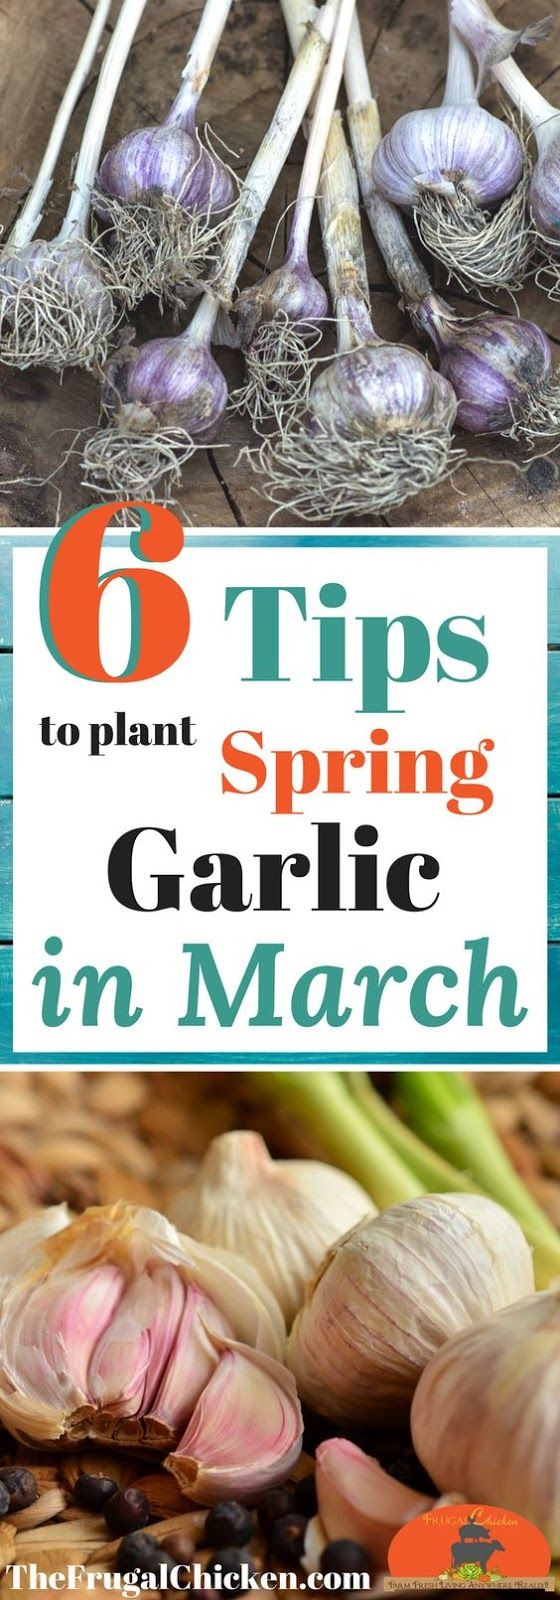 Planting organic garlic is one of those autumn activities that can make you feel like a real homesteader.